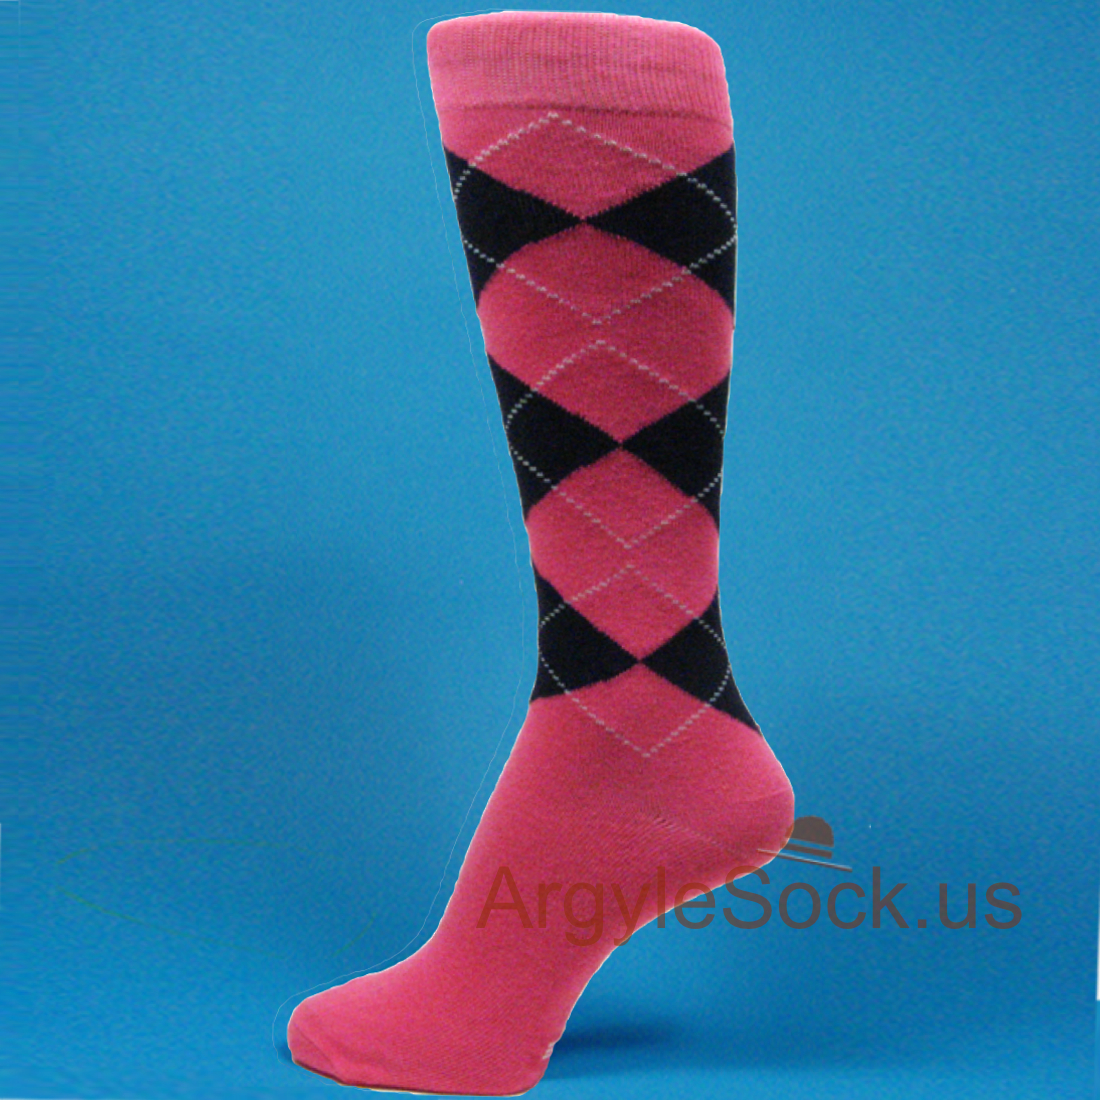 argyle socks for groomsmen